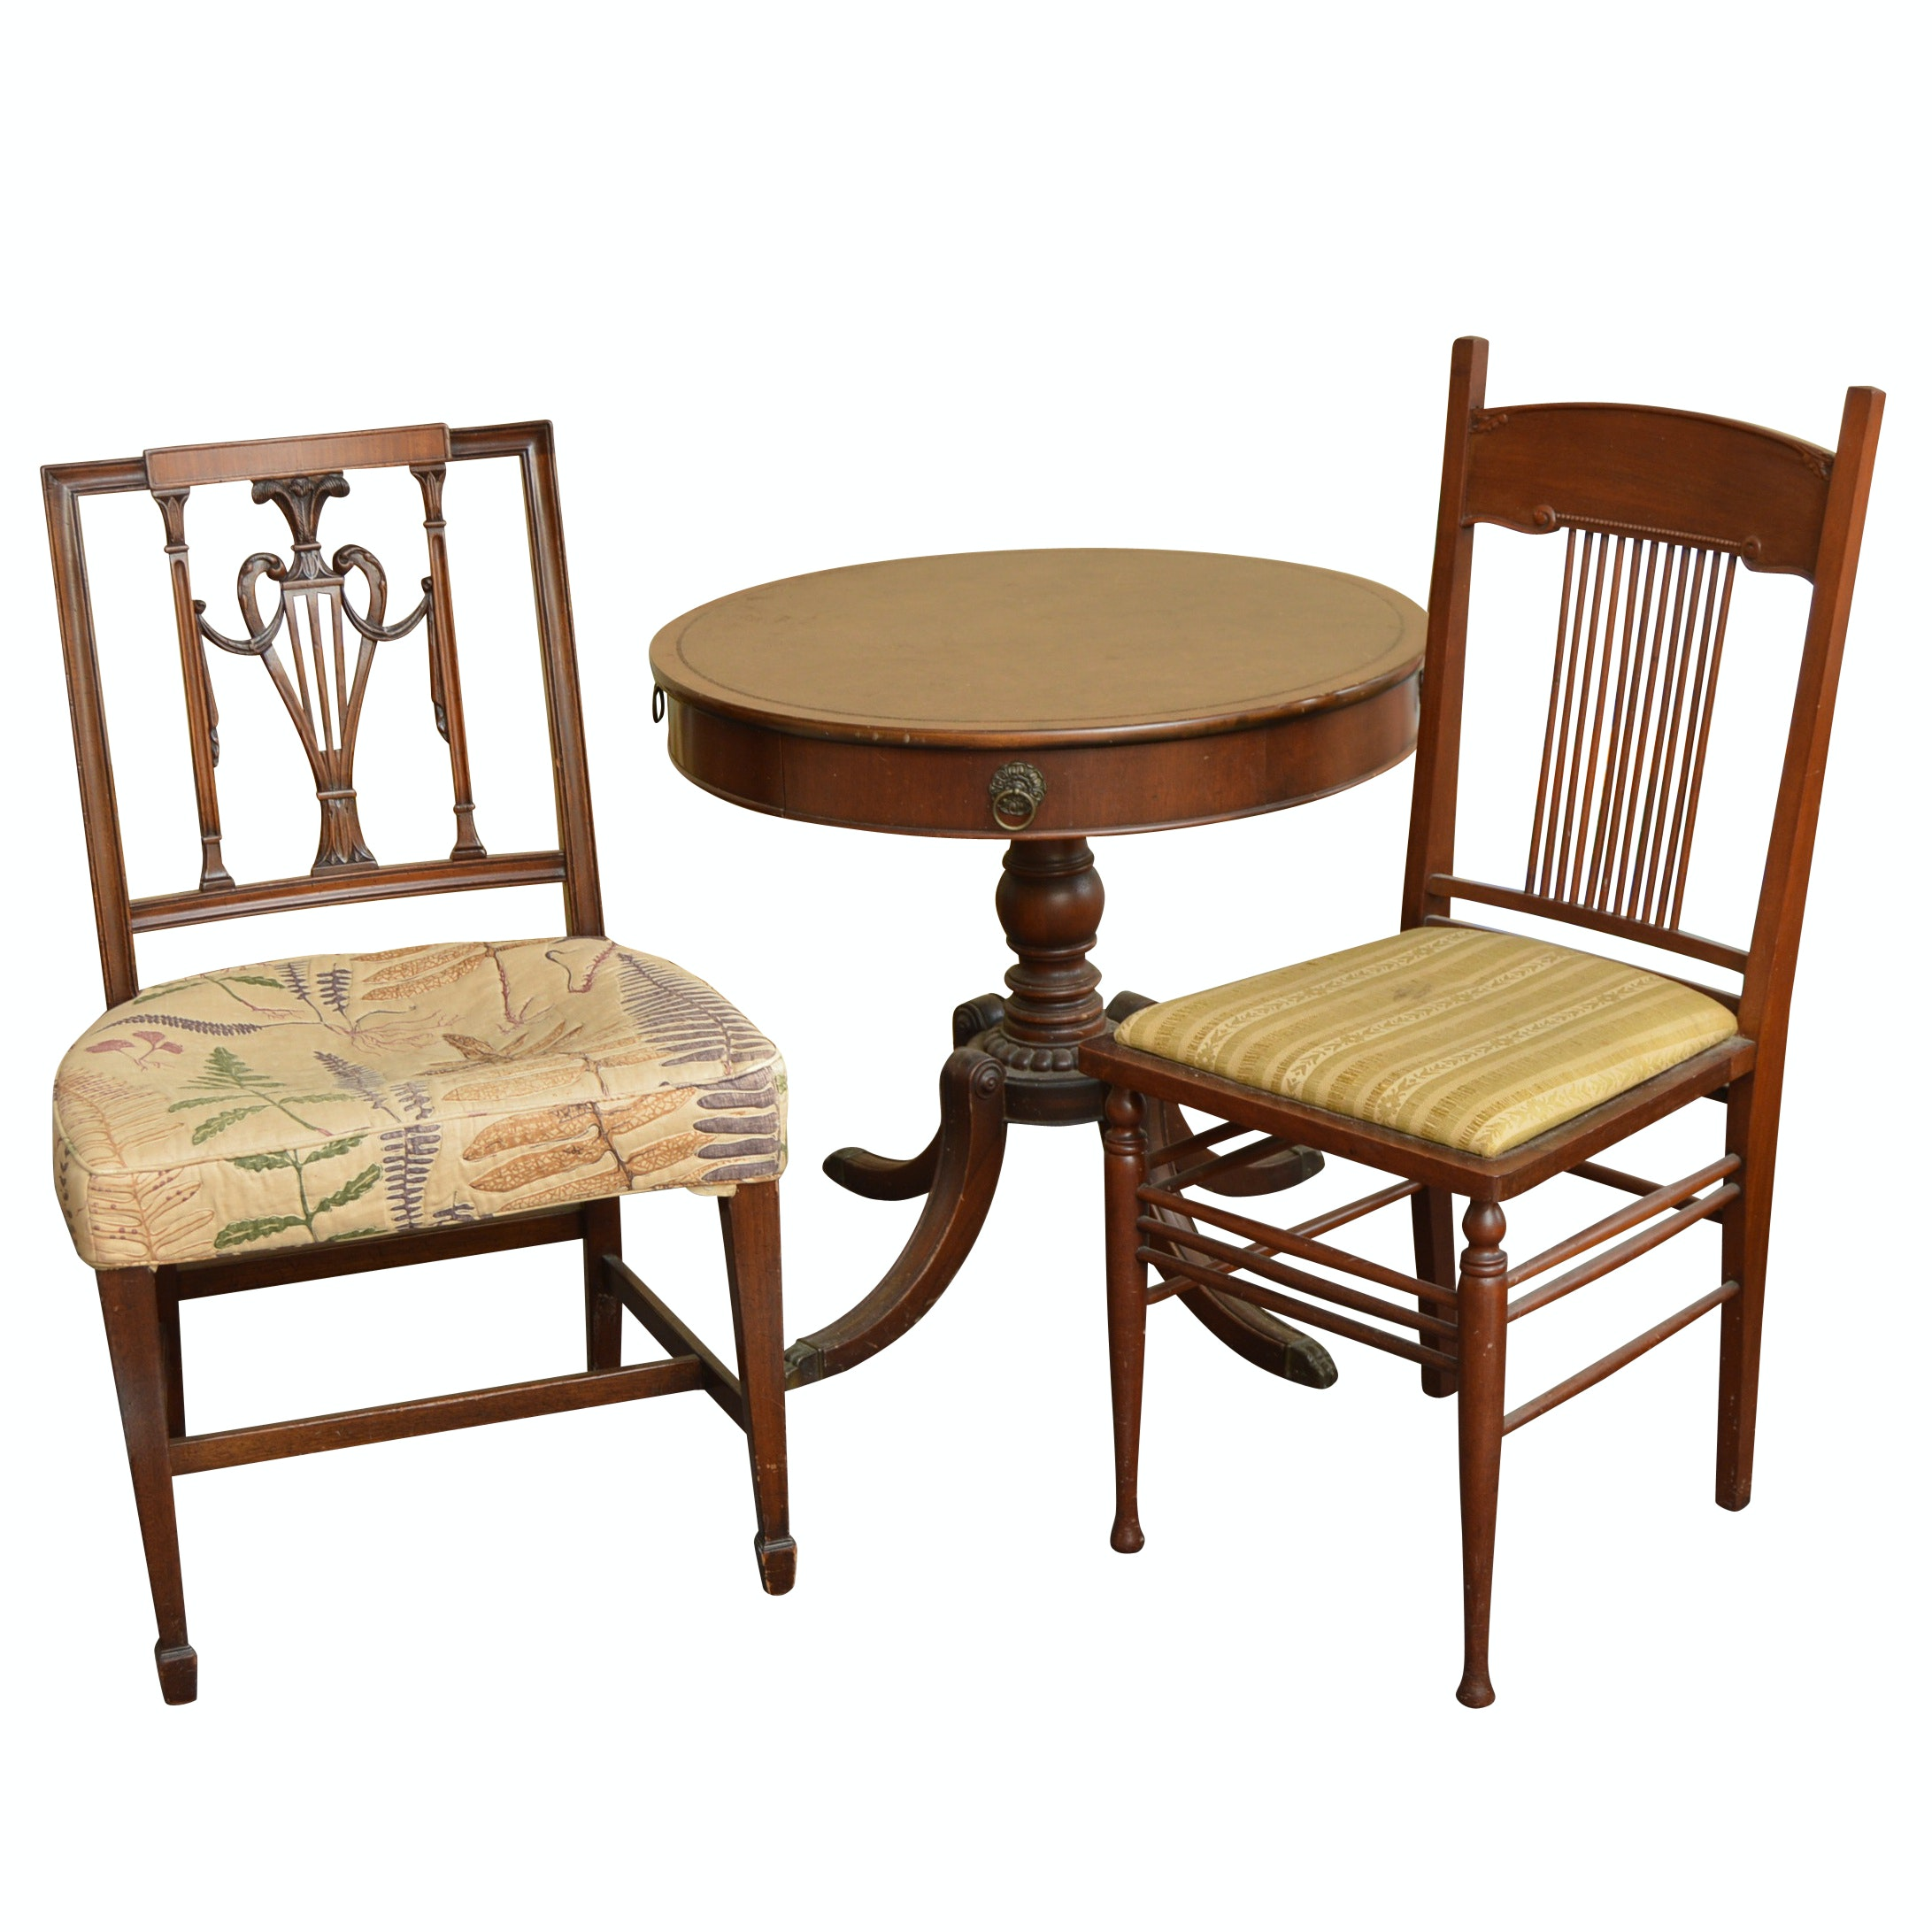 Neoclassic Style Table and Two Chairs